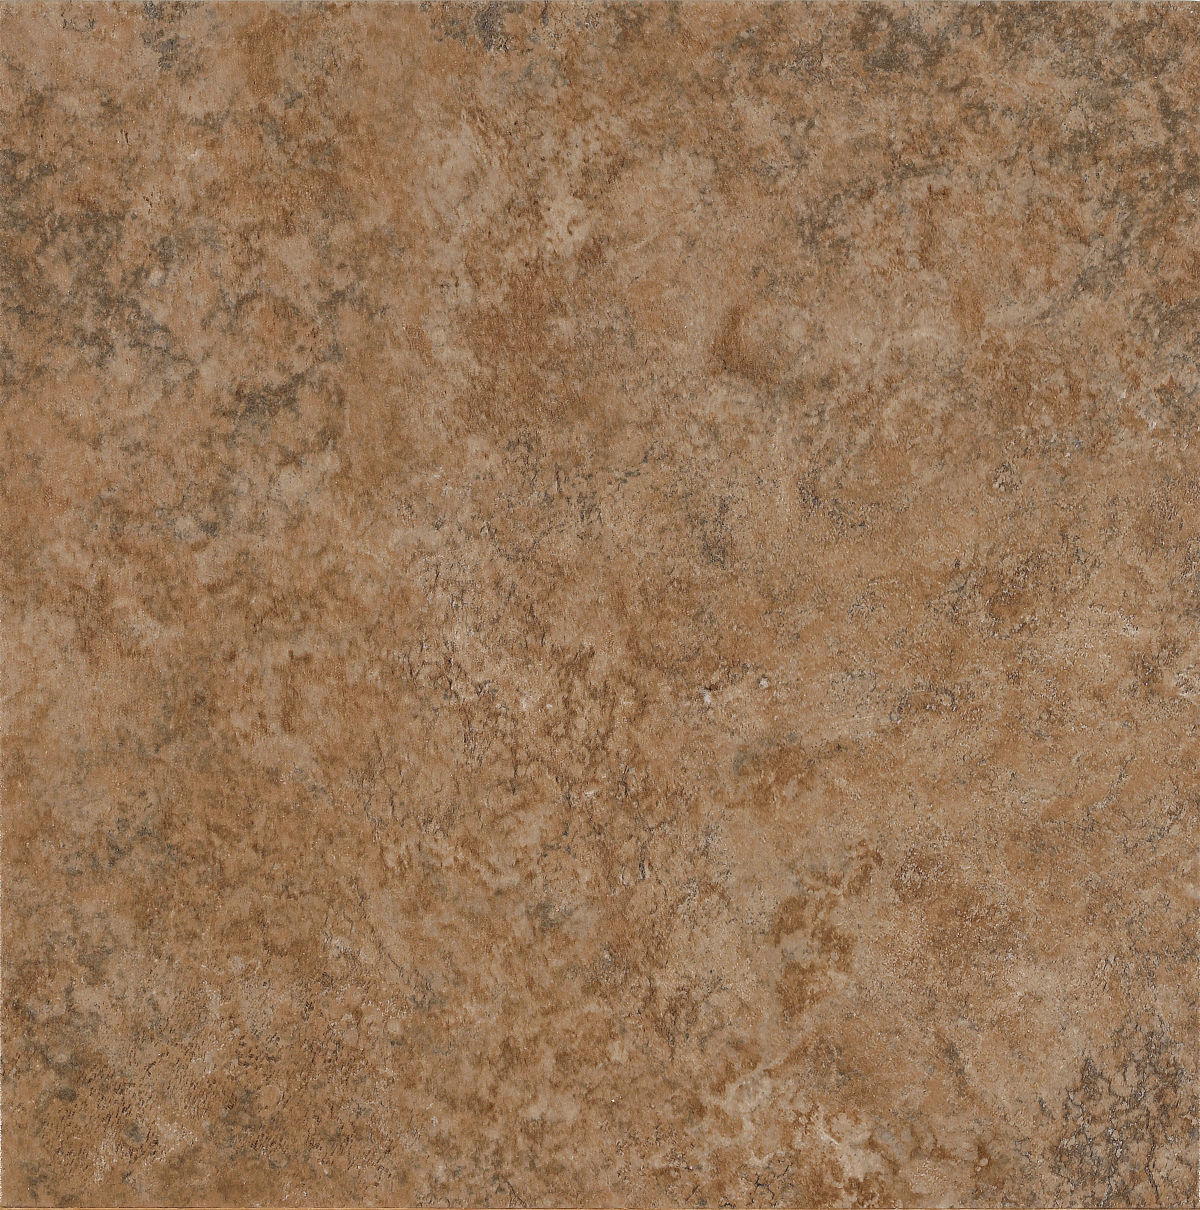 Armstrong Alterna Multistone Terracotta